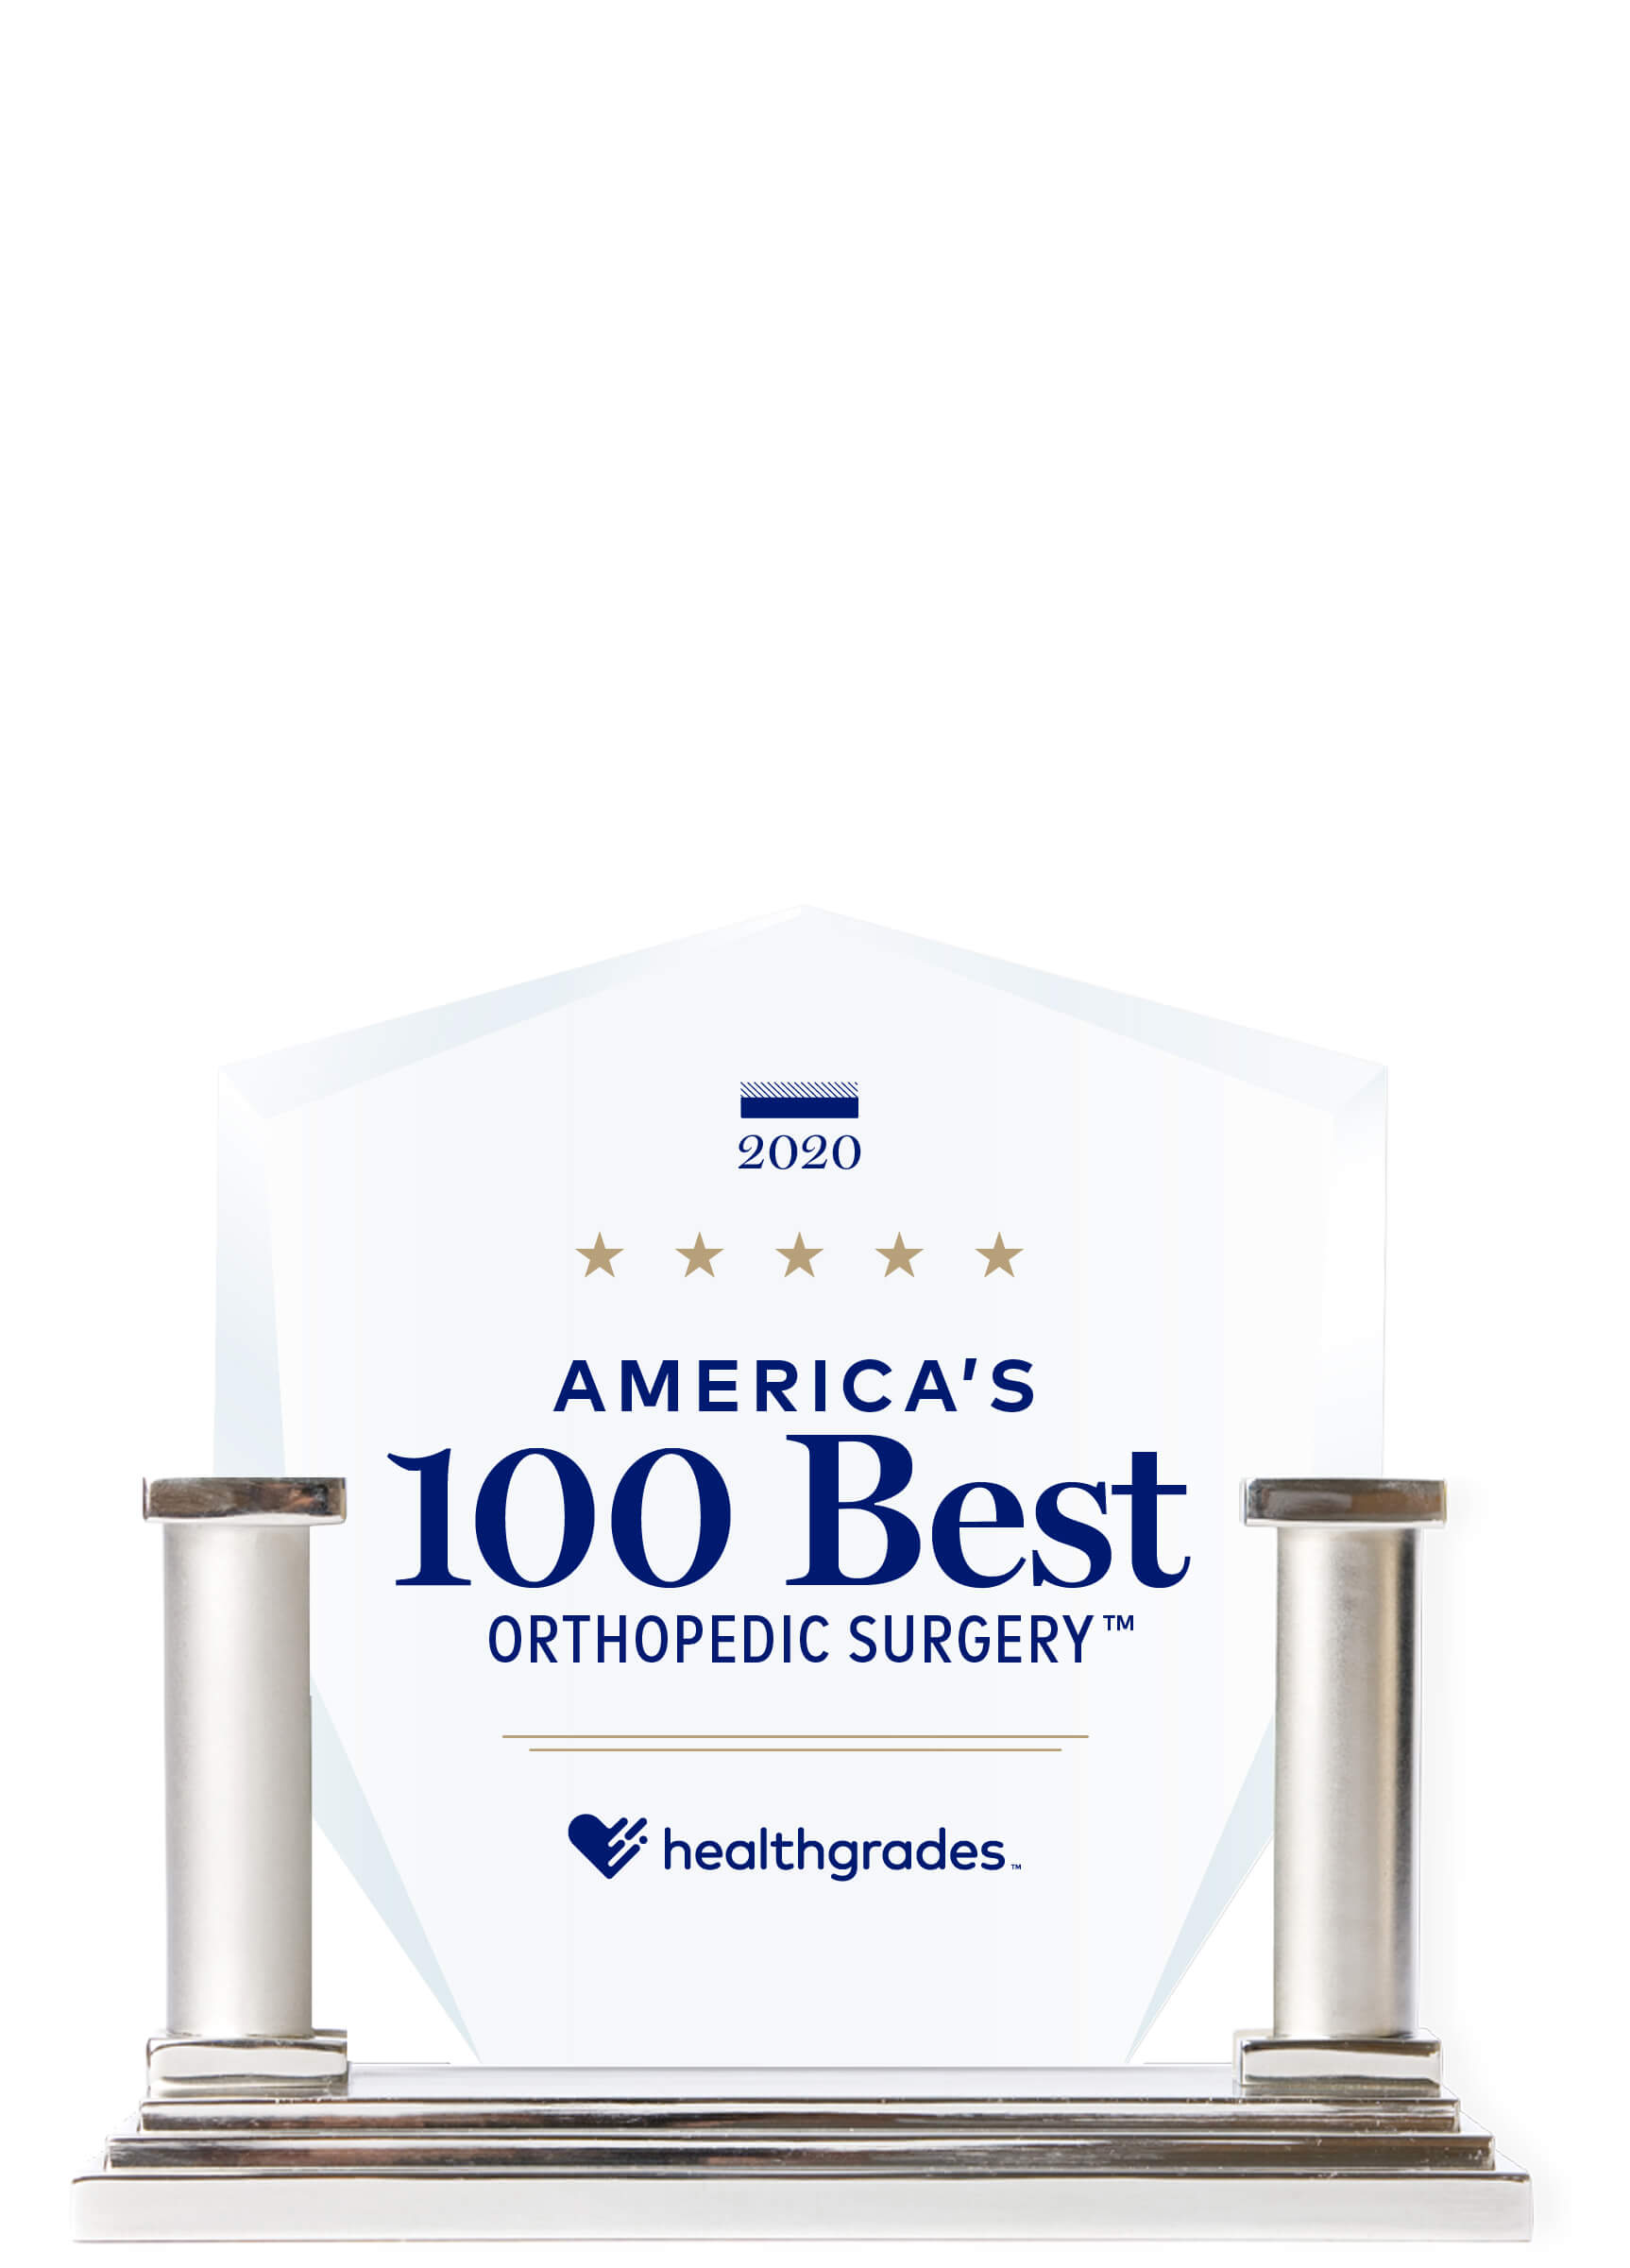 Healthgrades America's 100 Best Orthopedic Surgery Trophy 2020